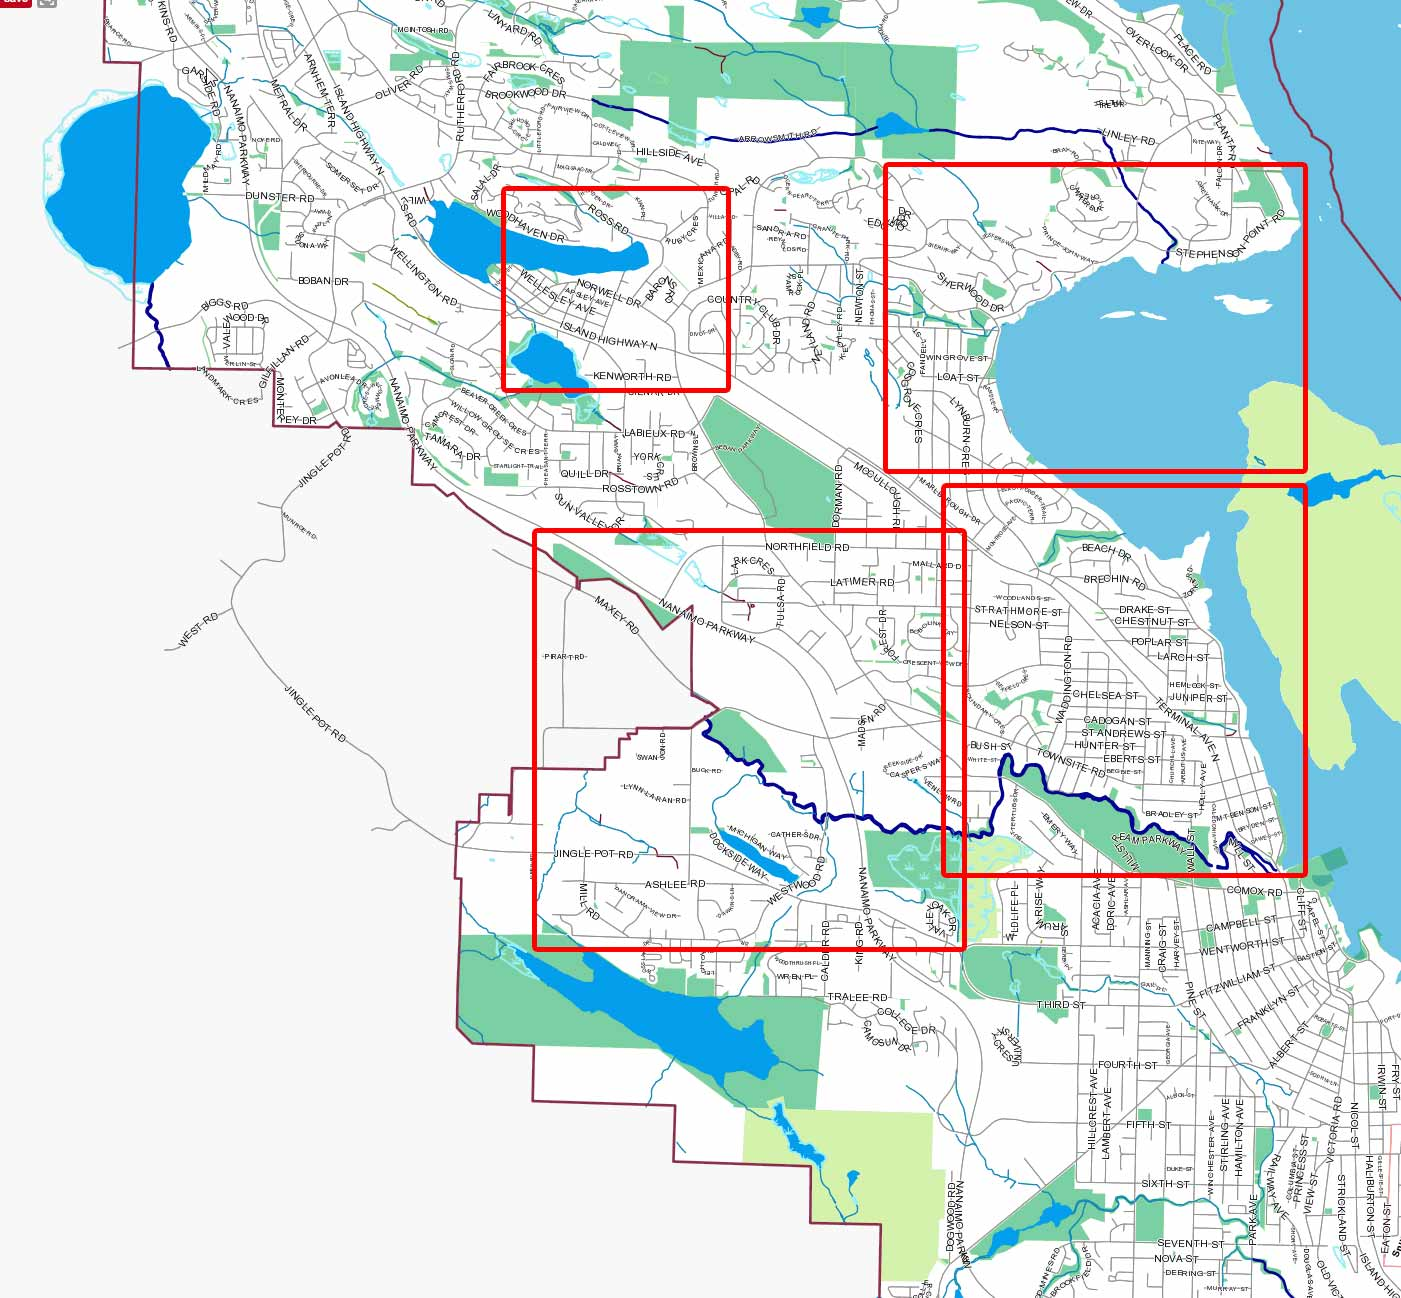 Water main flushing map Phase 2